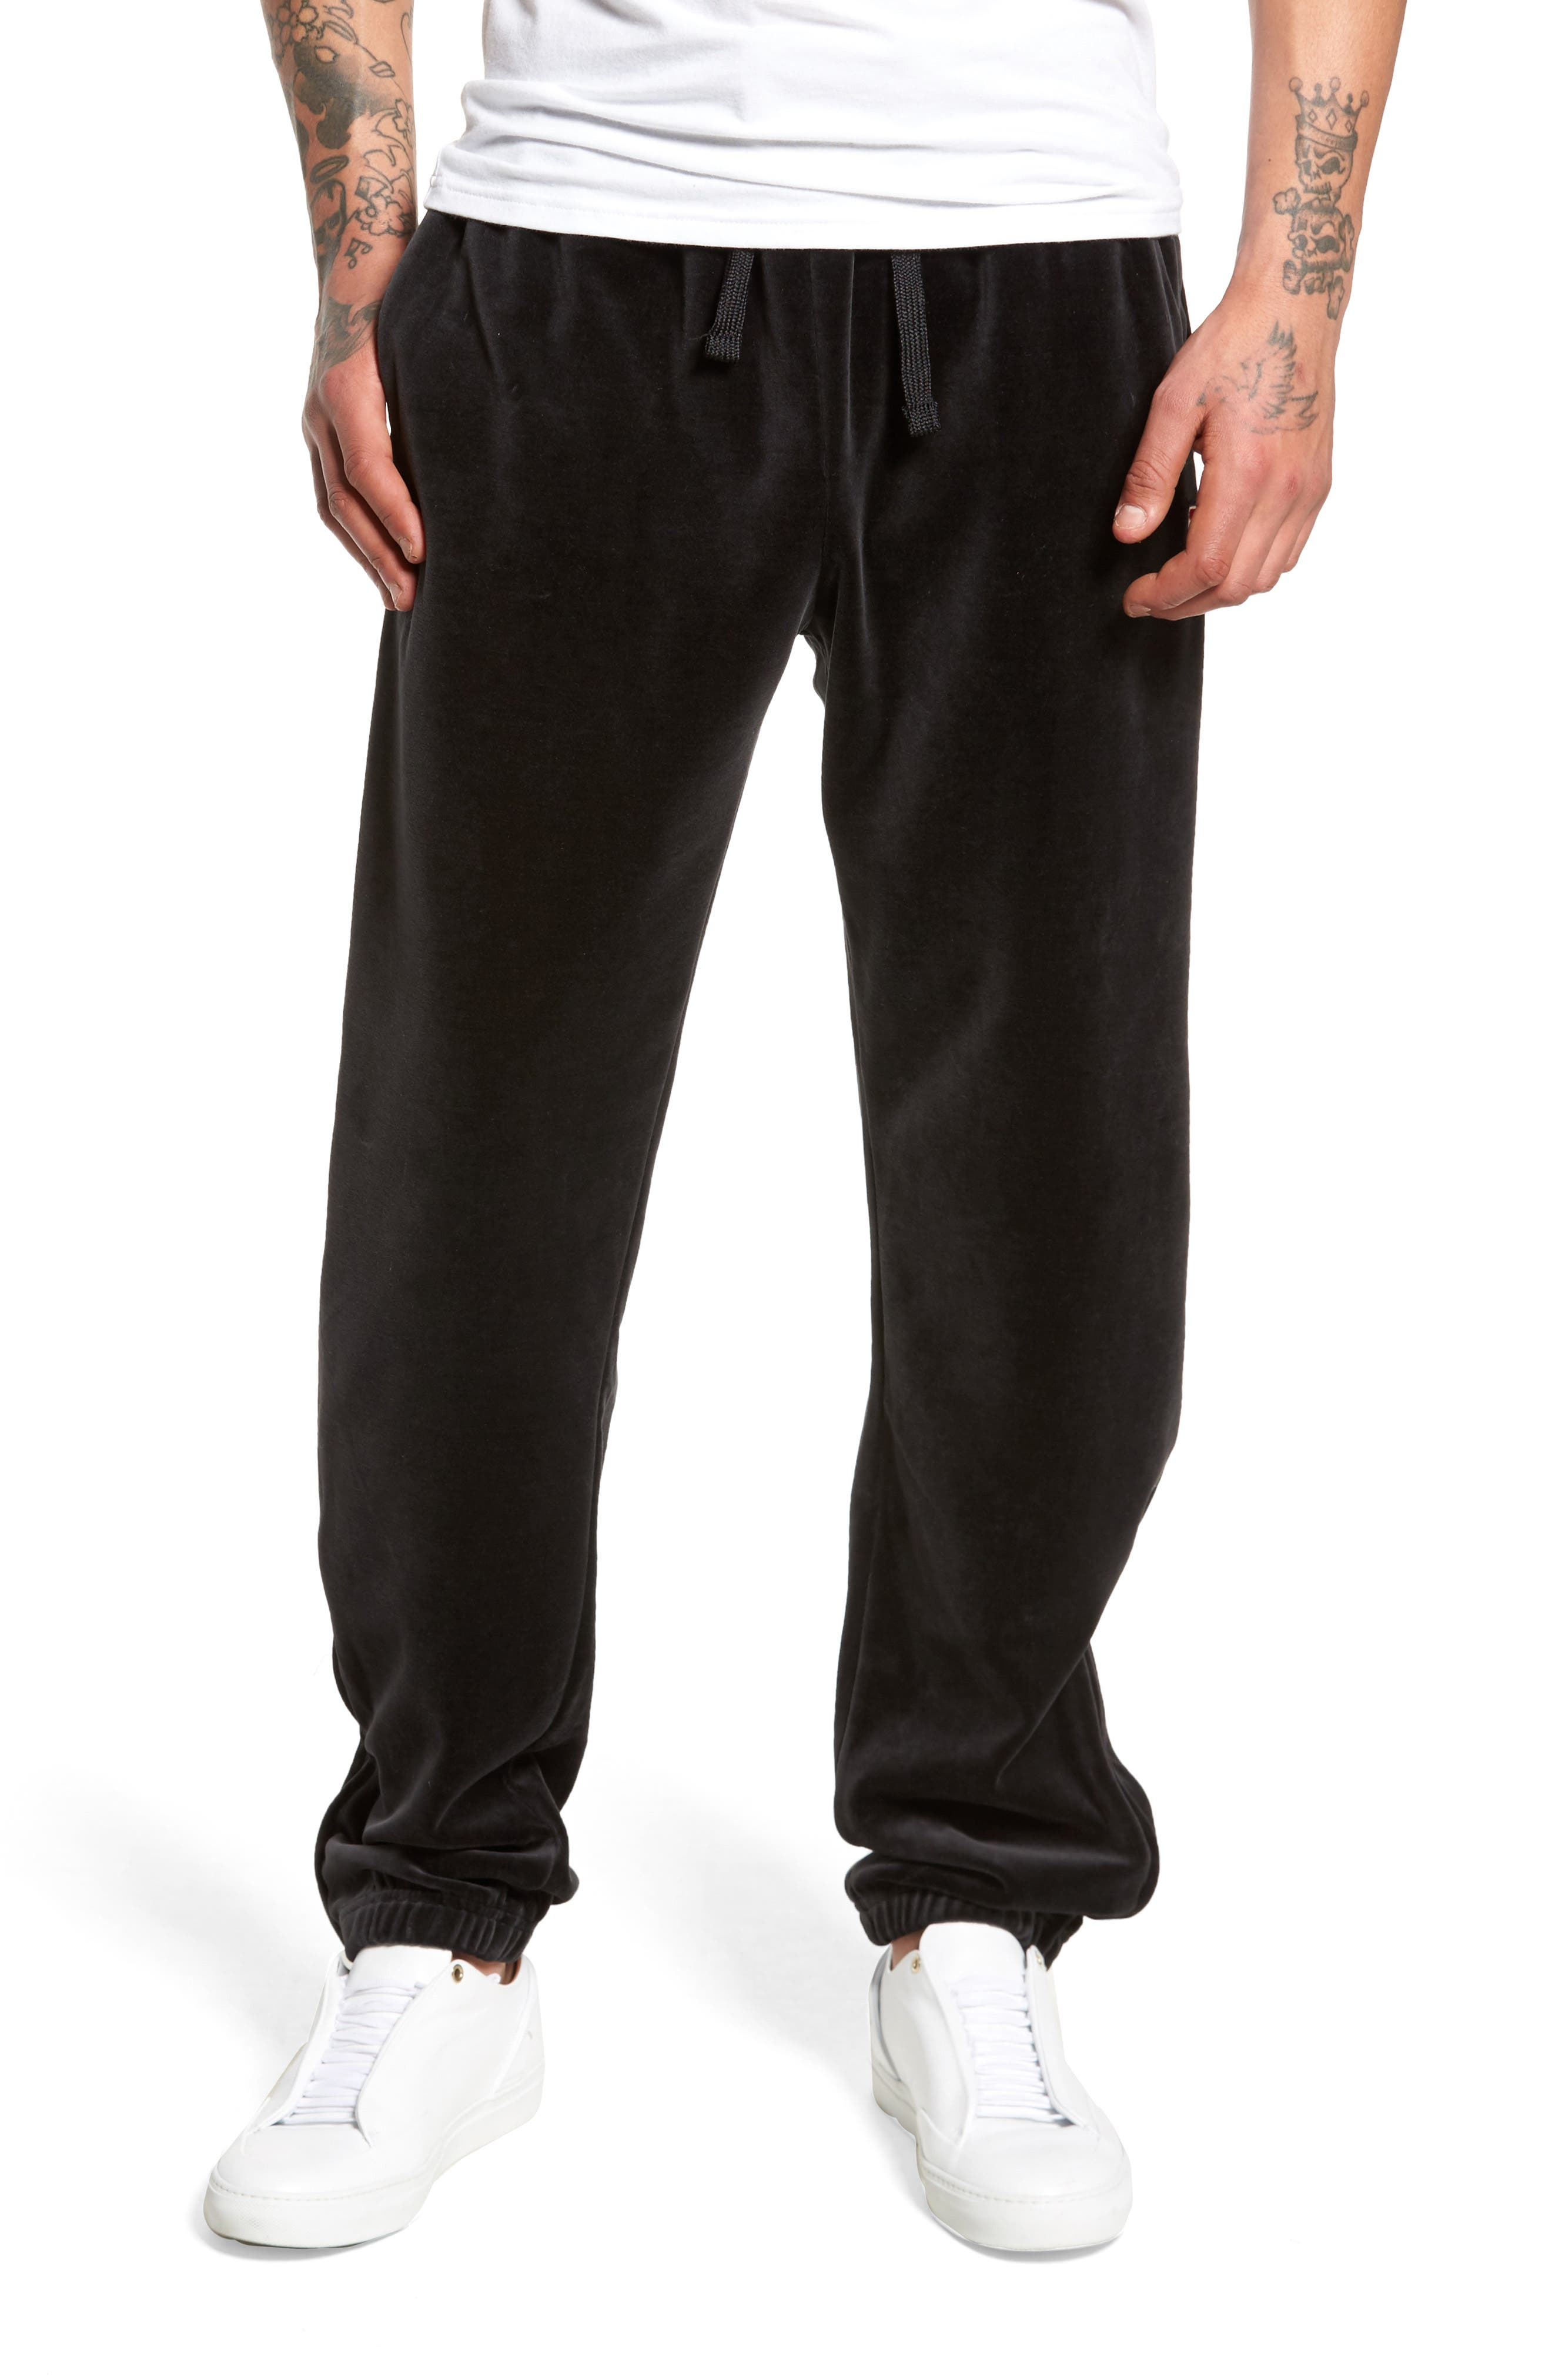 USA Slim Fit Velour Track Pants,                         Main,                         color, 001